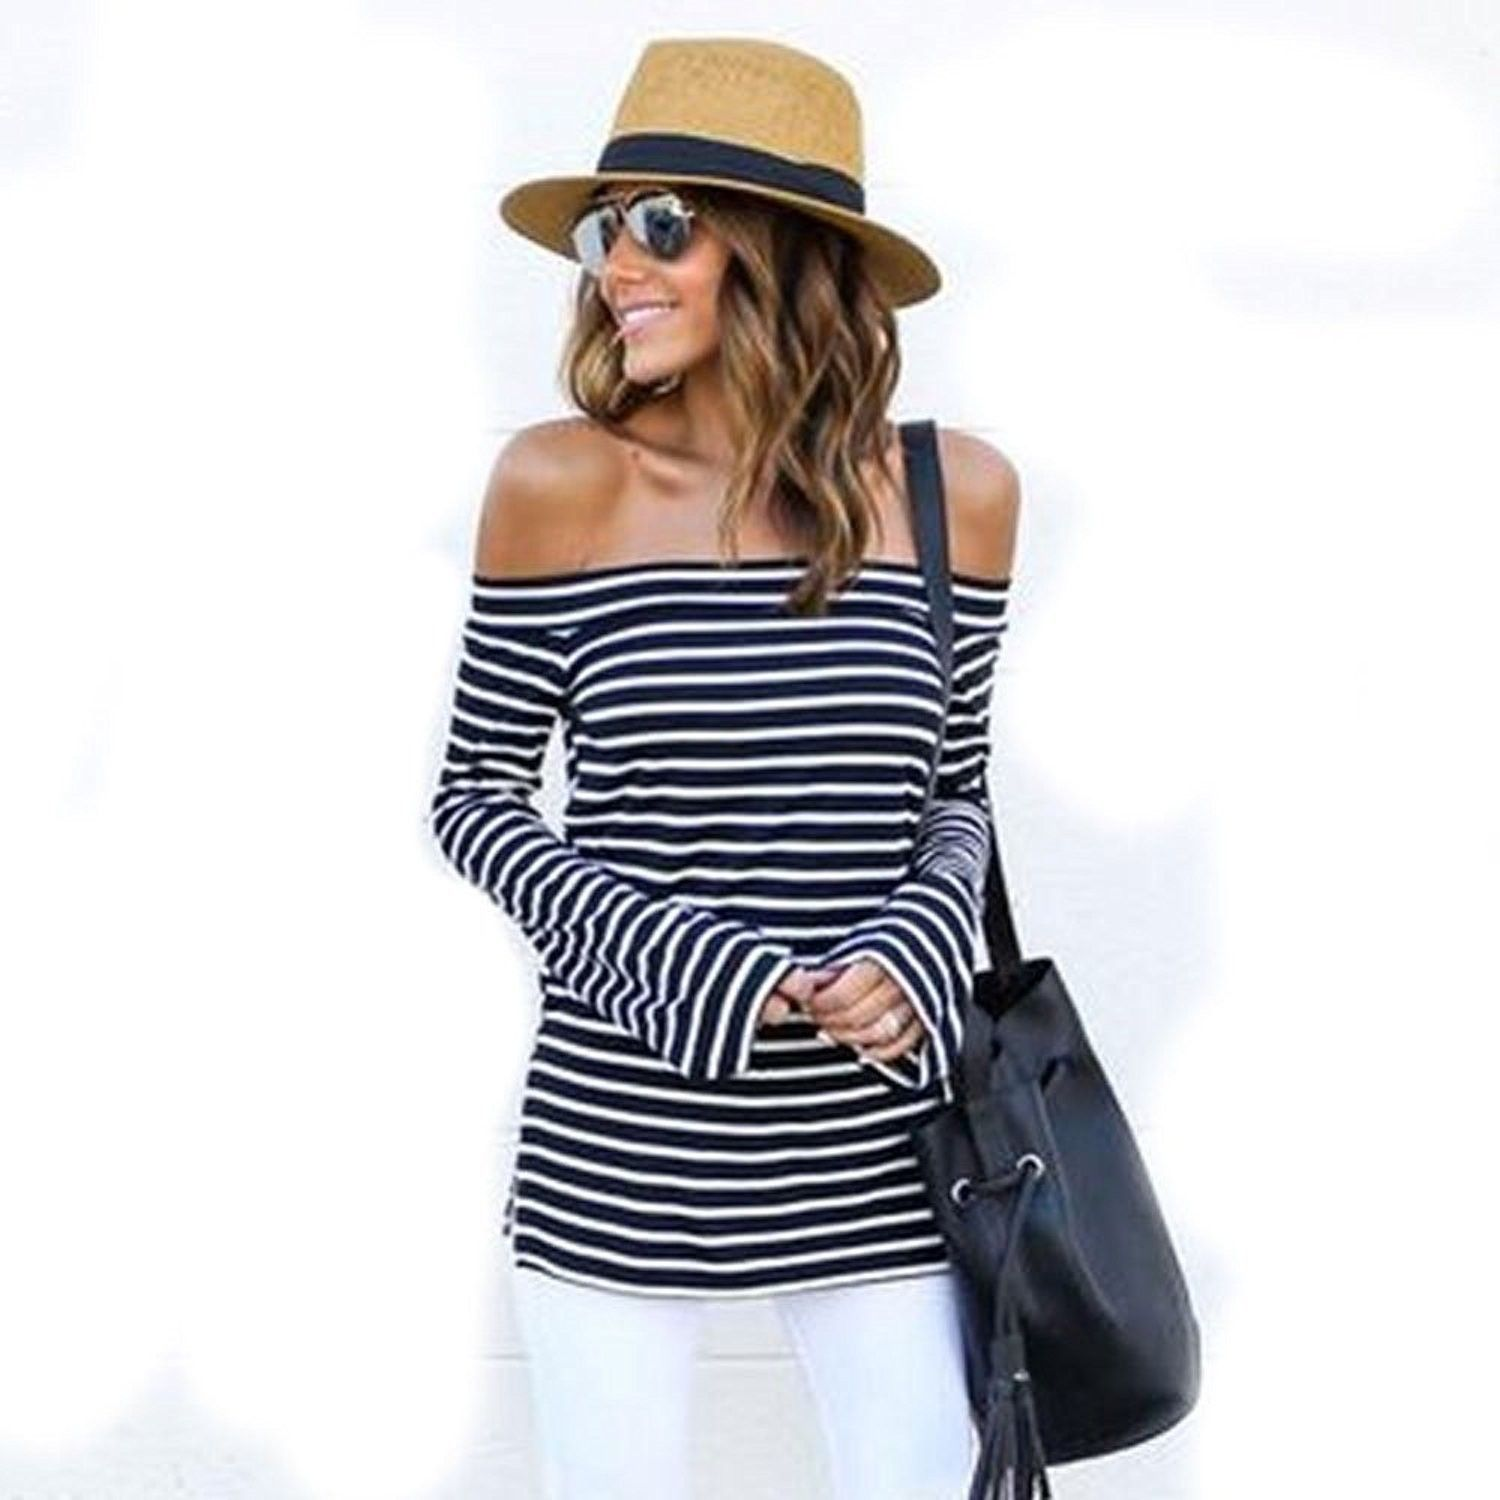 ef3918af Women's Off Shoulder Top Casual Loose Blouse Long Sleeve Strapless Stripe  Tops - CI187G86UHA,Women's Clothing, Tops & Tees, Blouses & Button-Down  Shirts ...